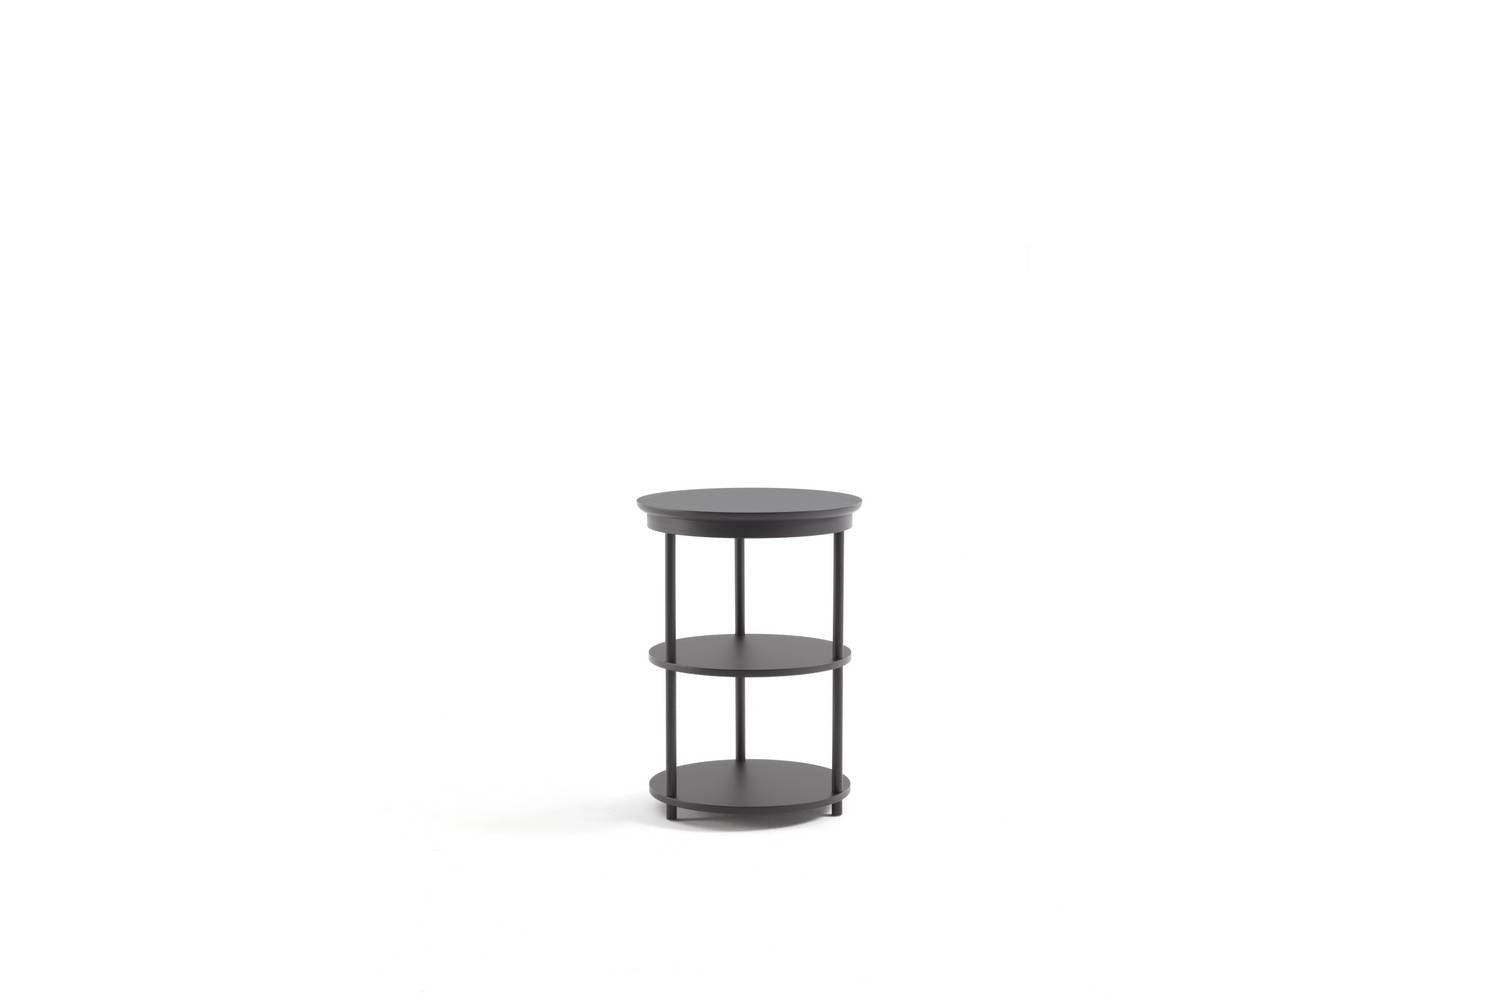 Plateau Side Table by Opera Design for Porada